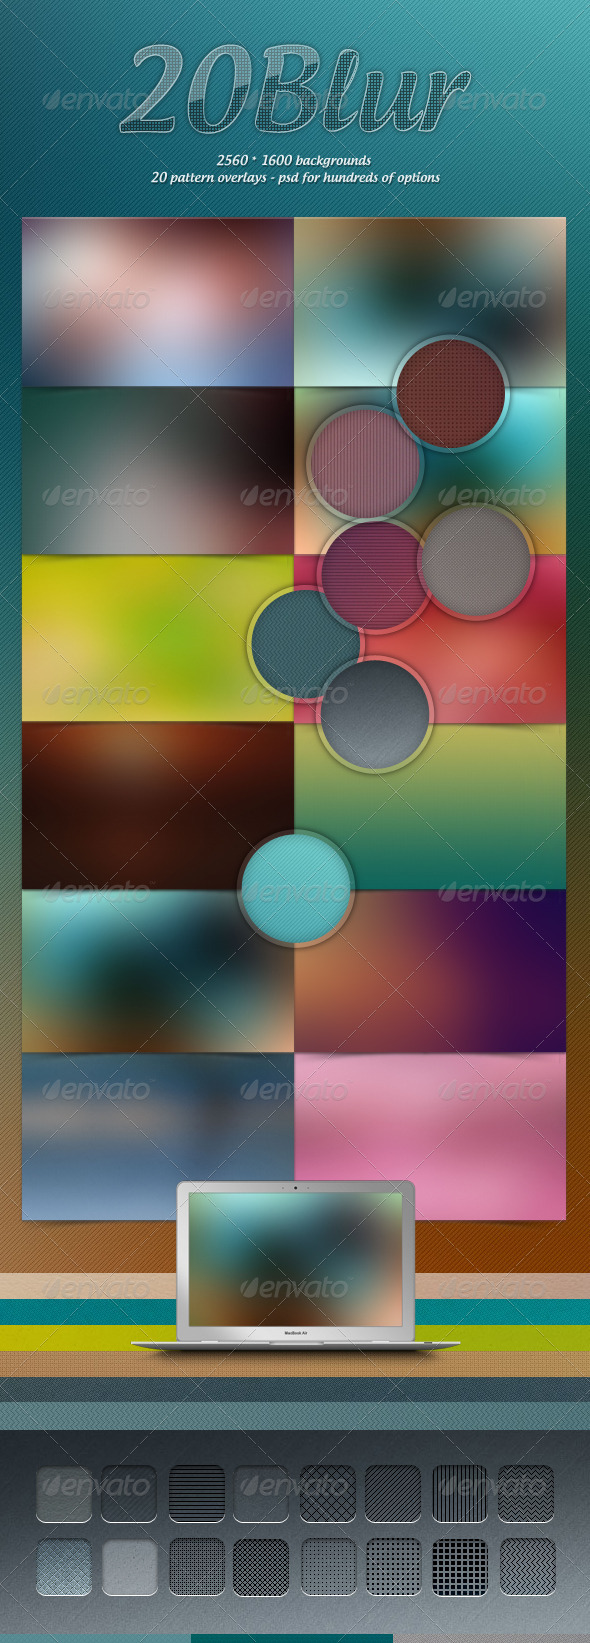 GraphicRiver 20 Blur Backgrounds & Pattern Overlays 3080778